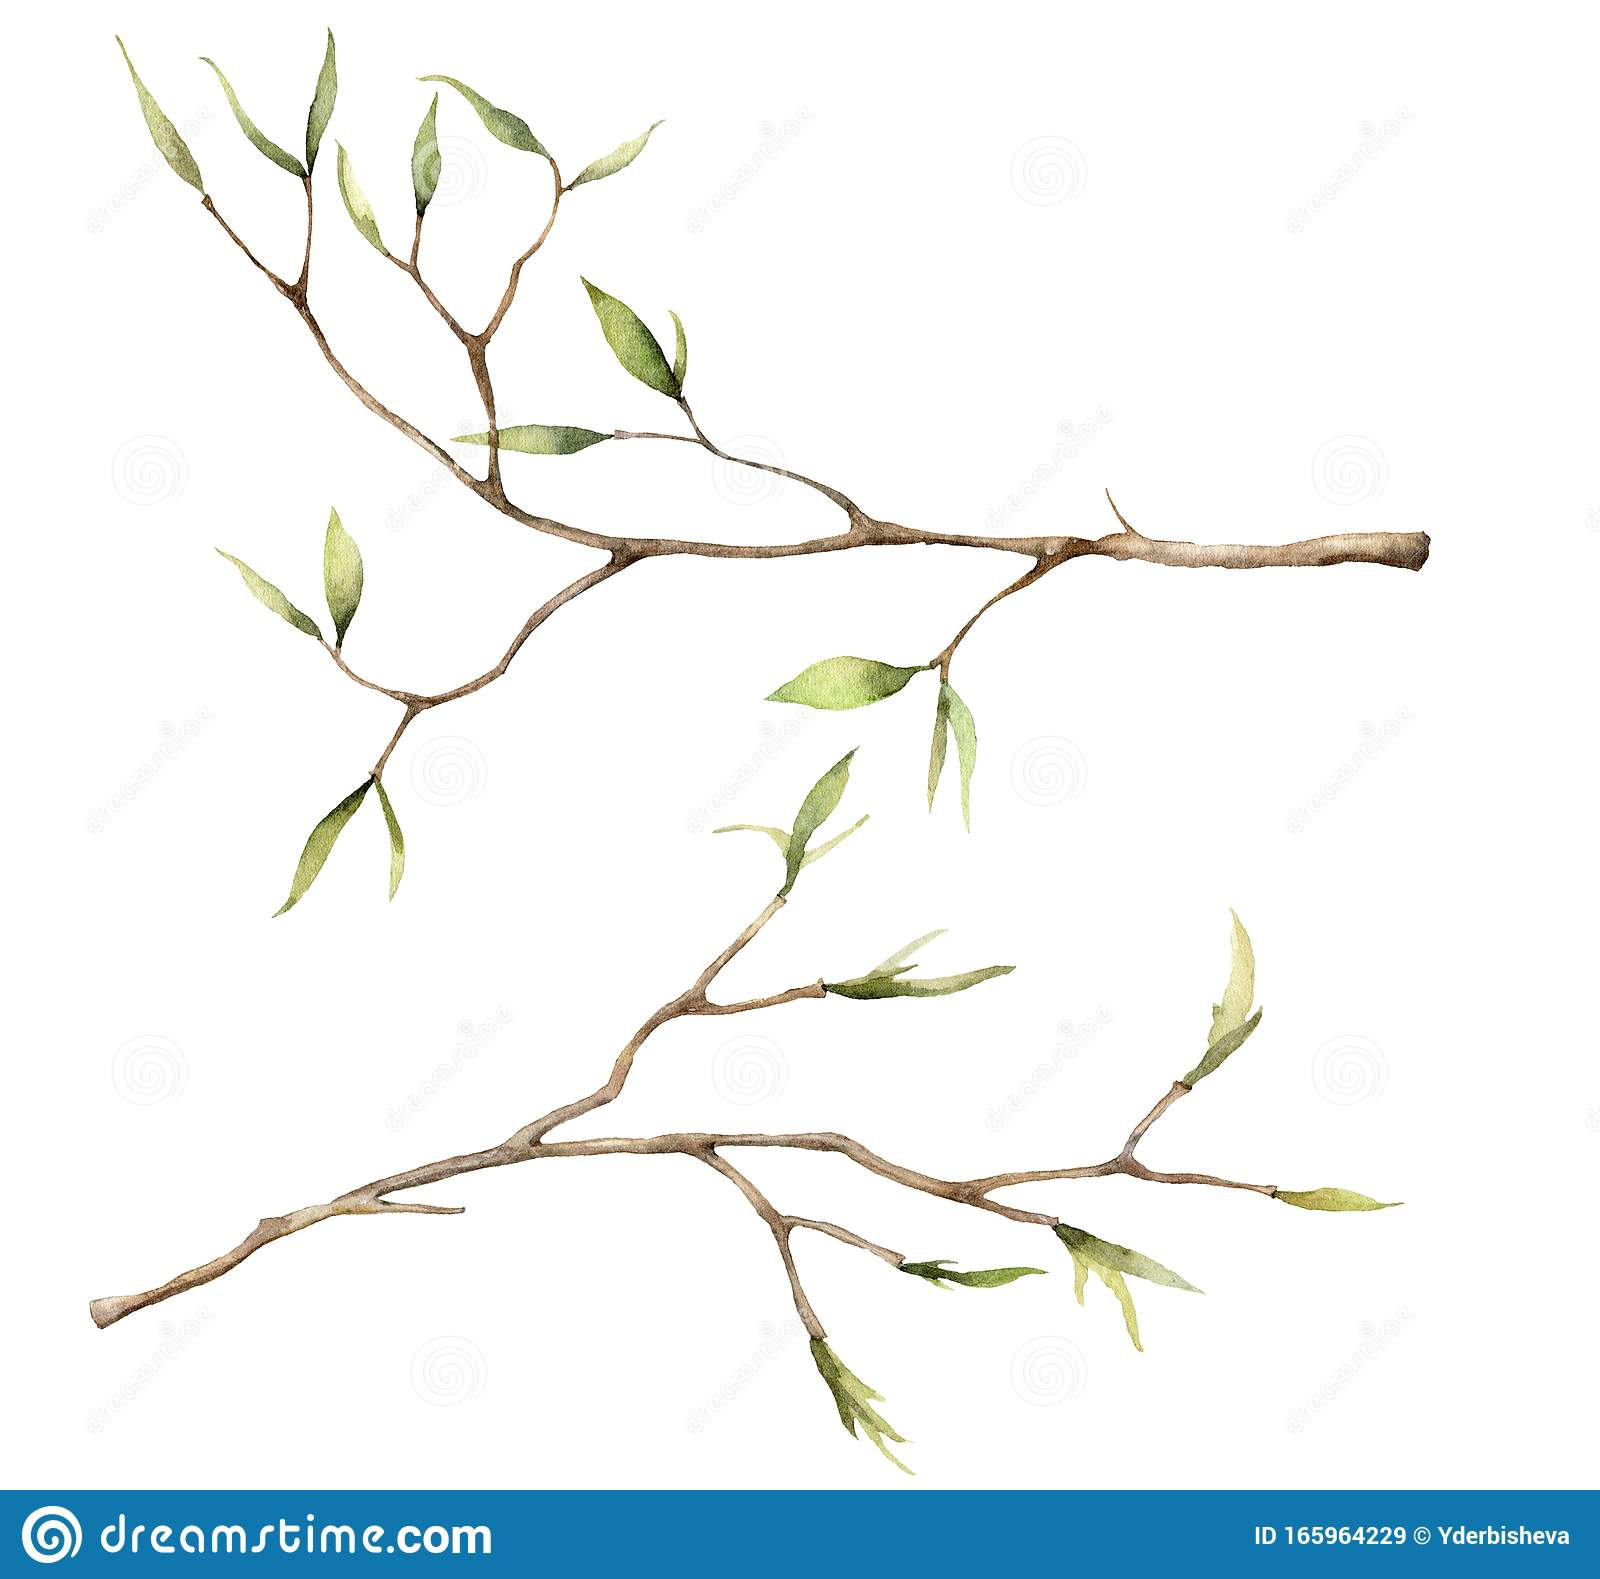 Watercolor Spring Set With Branches For Easter Hand Painted Tree Thin Branches And Buds Isolated On White Background Stock Illustration Illustration Of Forest Season 165964229